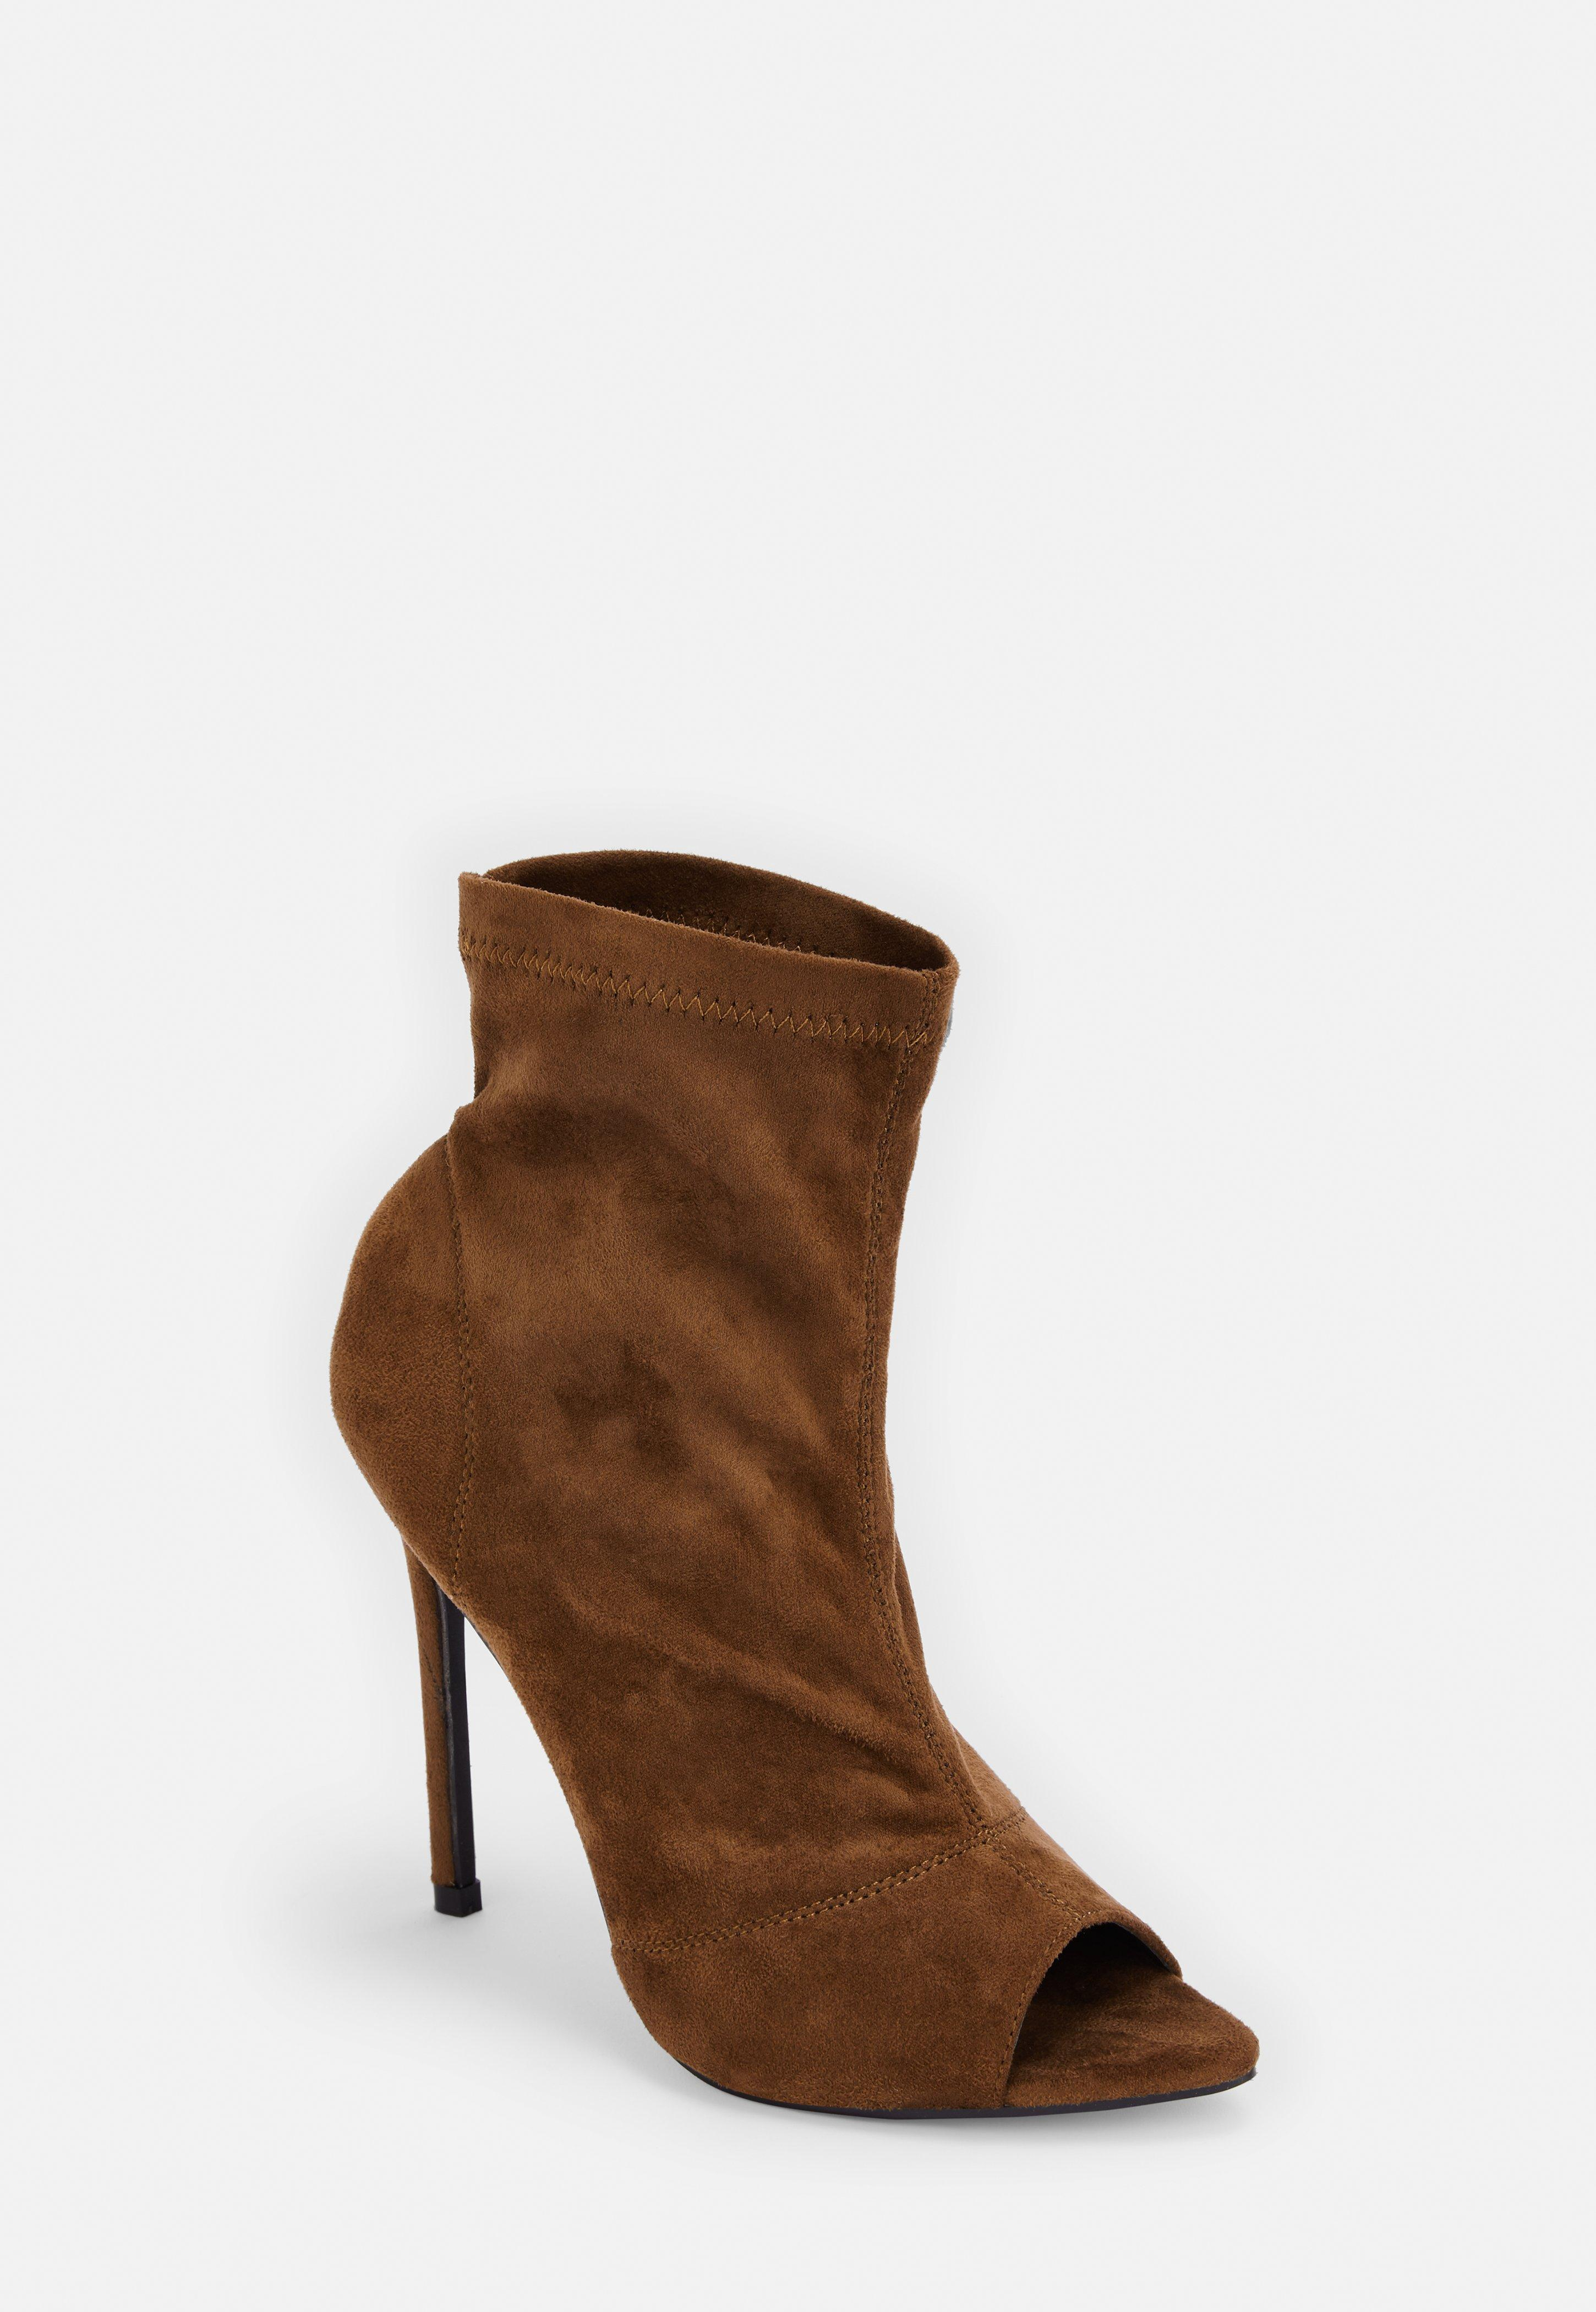 8e6fd3f41580 High Heels - Shop Women's Stilettos Online | Missguided